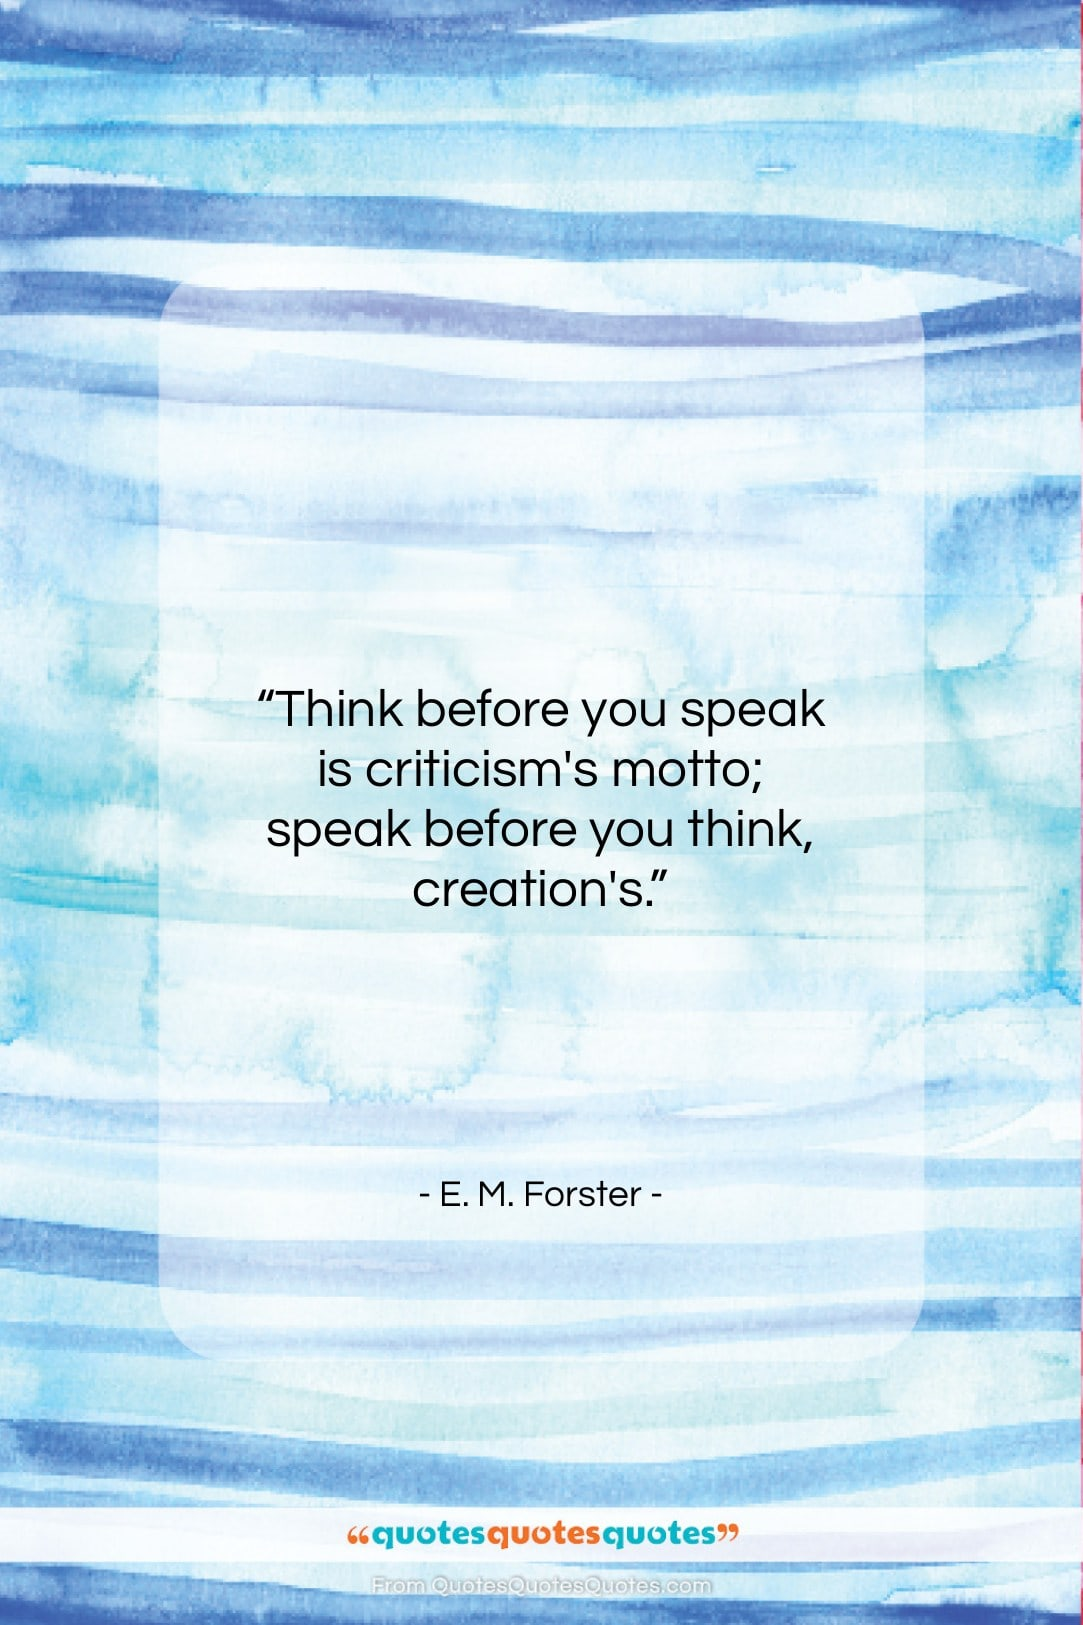 """E. M. Forster quote: """"Think before you speak is criticism's motto;…""""- at QuotesQuotesQuotes.com"""